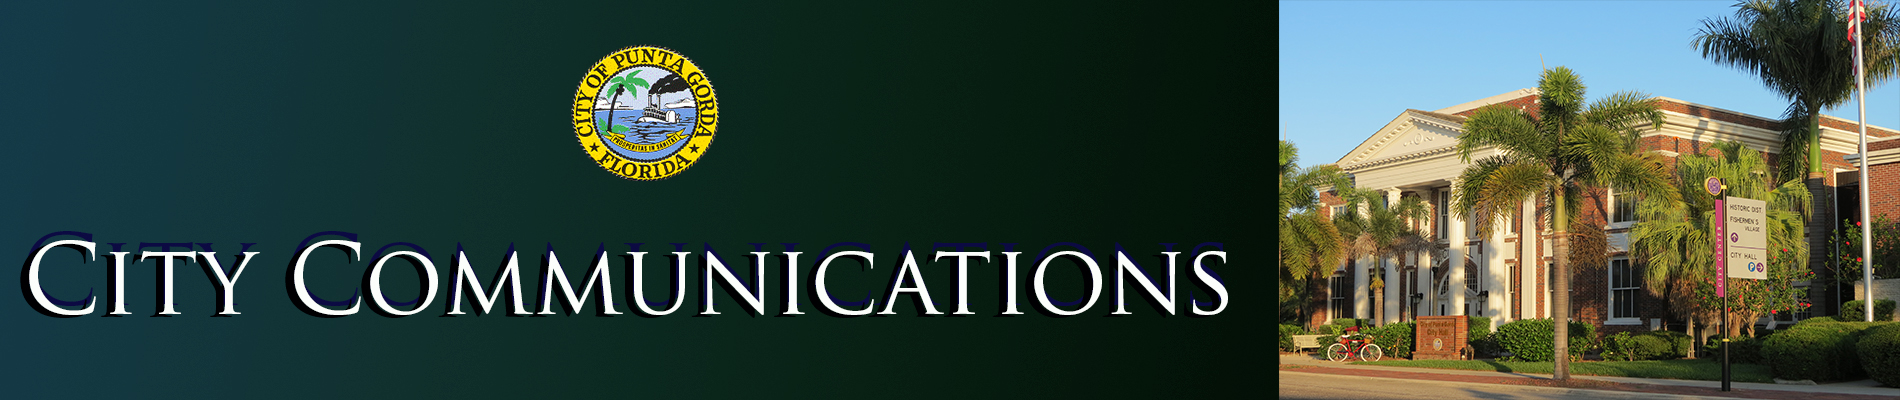 City Communications Teal